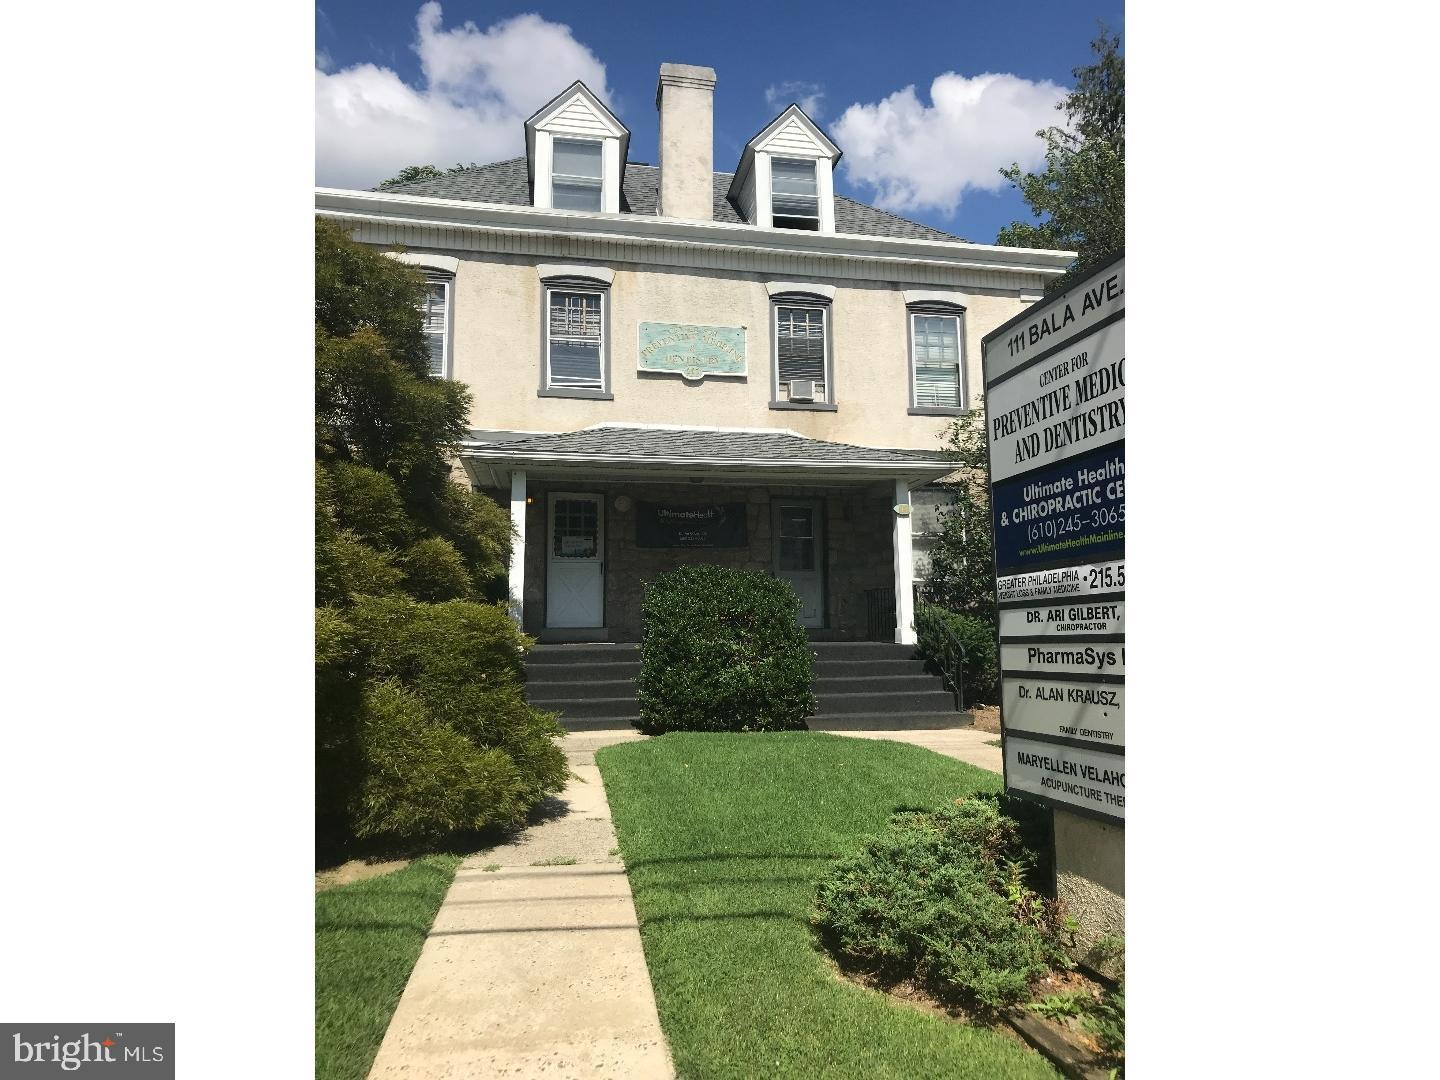 Property for Rent at Bala Cynwyd, Pennsylvania 19004 United States